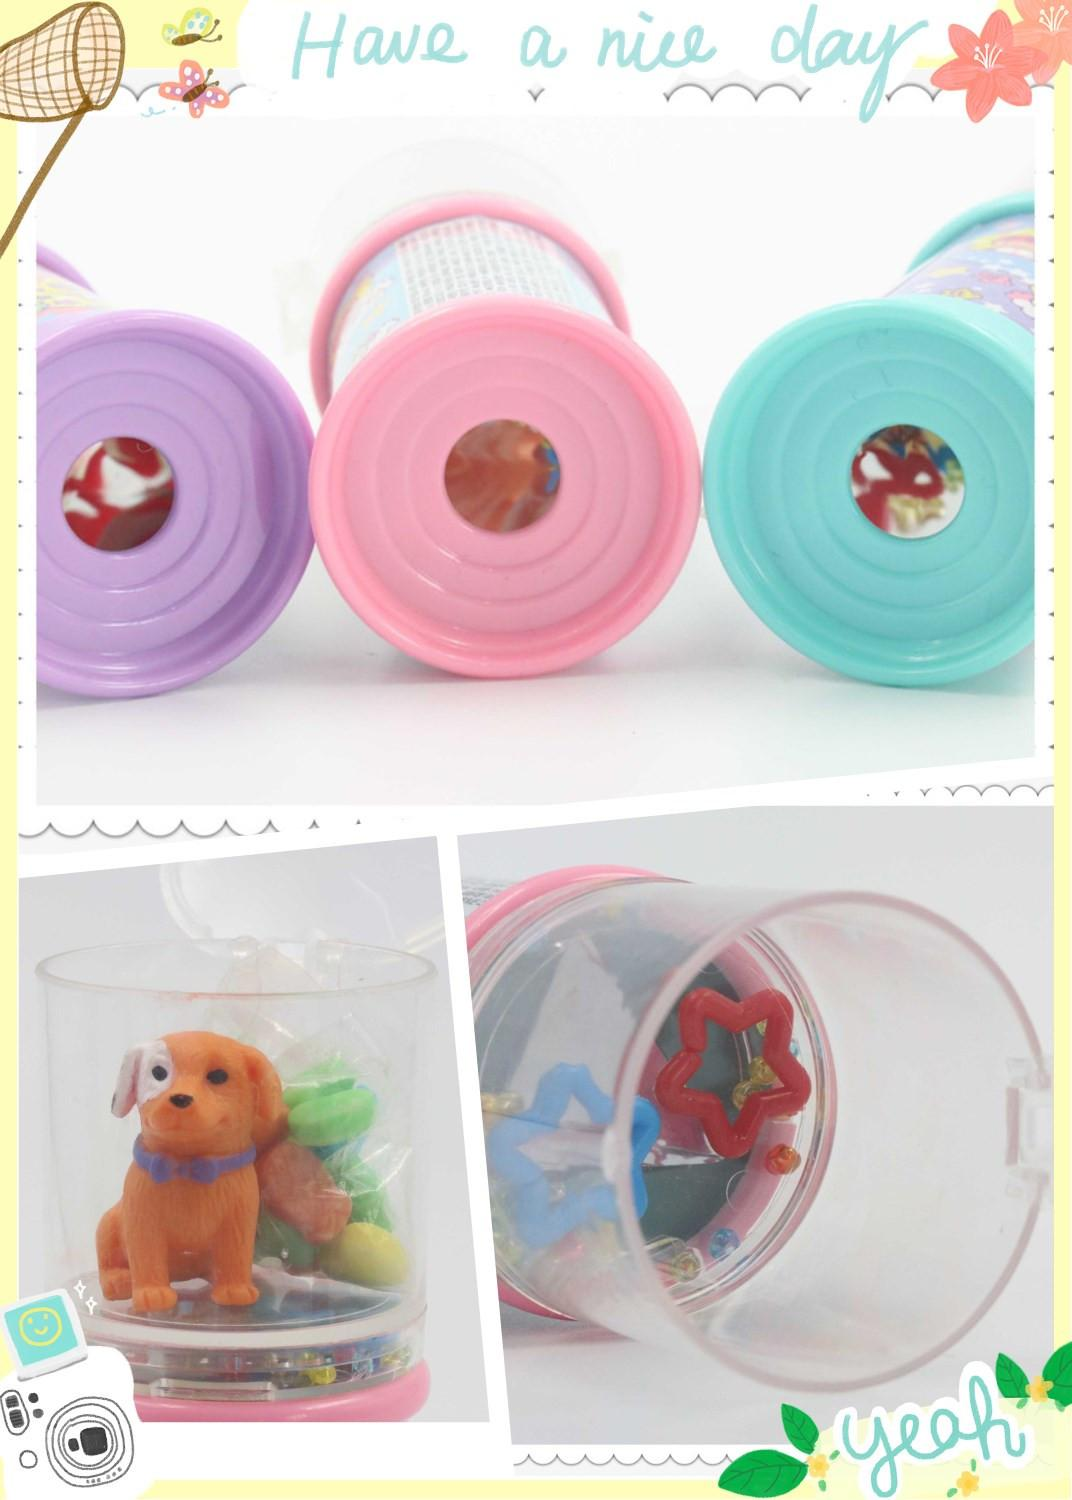 Colorful kaleidoscope toy with sweet candy 2